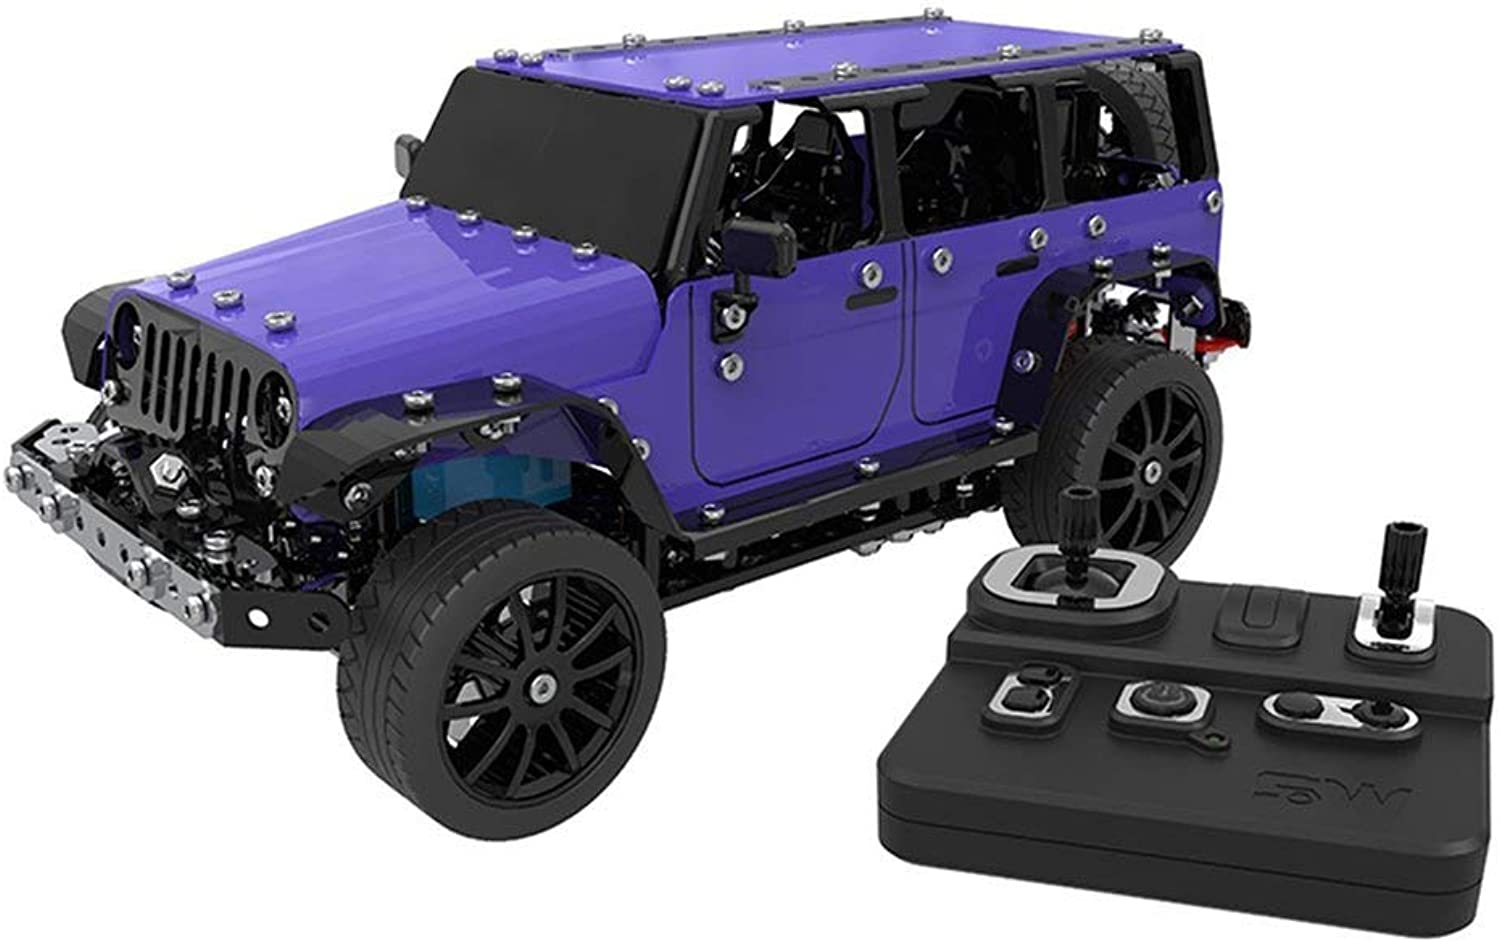 Generic World 2.4ghz 6 Channels USB Charging Building Block DIY Assembly Construction Remote Control Jeep OffRoad Toys Rc Car Toy bluee